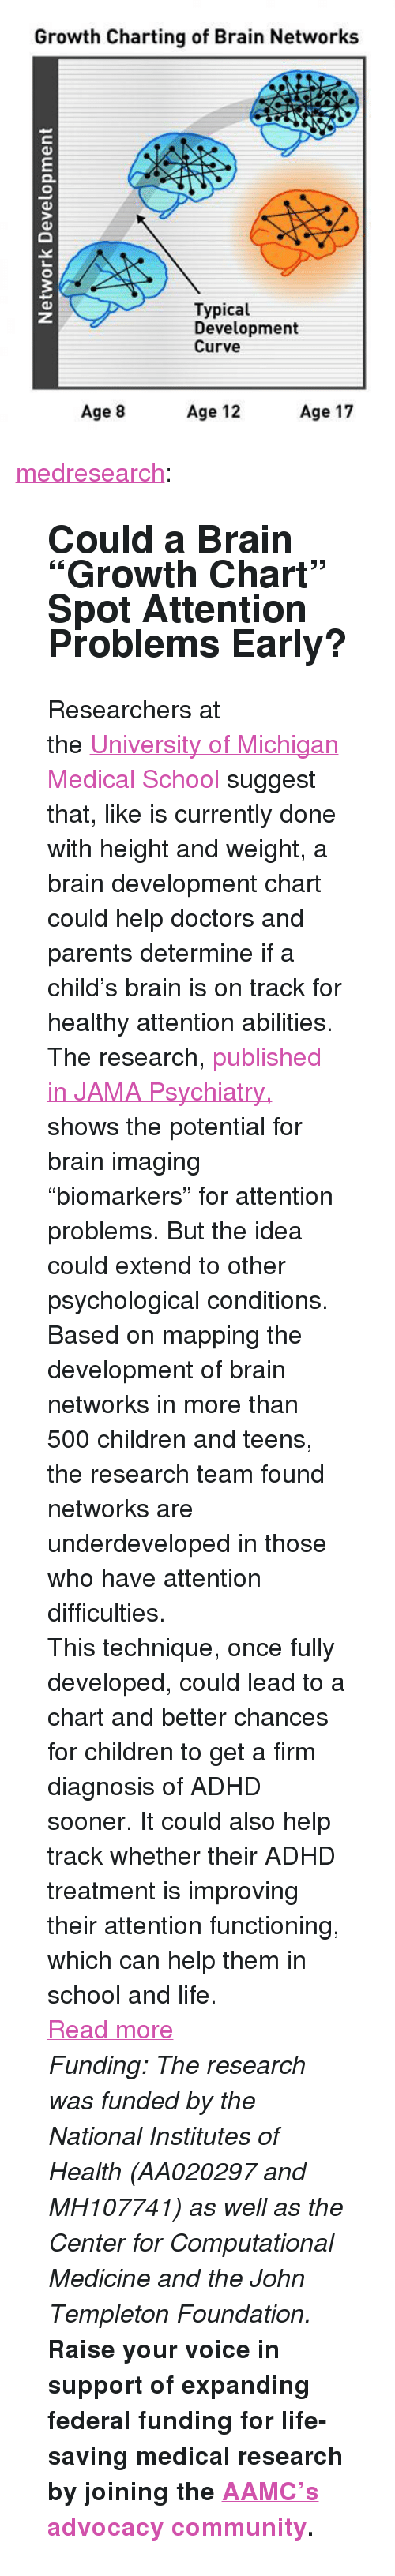 """University of Michigan: Growth Charting of Brain Networks  Typical  Development  Curve  3  Age 8  Age 12  Age 17 <p><a href=""""http://medresearch.tumblr.com/post/143342934359/could-a-brain-growth-chart-spot-attention"""" class=""""tumblr_blog"""">medresearch</a>:</p>  <blockquote><h2> Could a Brain """"Growth Chart"""" Spot Attention Problems Early?  </h2><p>Researchers at the<a href=""""https://medicine.umich.edu/medschool/"""">University of Michigan Medical School</a>suggest that, like is currently done with height and weight, a brain development chart could help doctors and parents determine if a child's brain is on track for healthy attention abilities.</p><p>The research, <a href=""""http://archpsyc.jamanetwork.com/article.aspx?articleid=2513687"""">published in JAMA Psychiatry,</a> shows the potential for brain imaging """"biomarkers"""" for attention problems. But the idea could extend to other psychological conditions.</p><p>Based on mapping the development of brain networks in more than 500 children and teens, the research team found networks are underdeveloped in those who have attention  difficulties.</p><p>This technique, once fully developed, could lead to a chart and better chances for  children to get a firm diagnosis of ADHD sooner. It could also help  track whether their ADHD treatment is improving their attention  functioning, which can help them in school and life.</p><p><a href=""""http://The%20research,%20published%20in%20JAMA%20Psychiatry,%20shows%20the%20potential%20for%20brain%20imaging%20%E2%80%9Cbiomarkers%E2%80%9D%20for%20attention%20problems.%20But%20the%20idea%20could%20extend%20to%20other%20psychological%20conditions."""">Read more</a></p><p><i>Funding: The research was funded by the National Institutes of Health  (AA020297 and MH107741) as well as the Center for Computational Medicine  and the John Templeton Foundation.</i></p><p>  <b>Raise your voice in support of expanding federal funding for life-saving medical research by joining the </b><b><a href=""""http://t.umblr.com/red"""